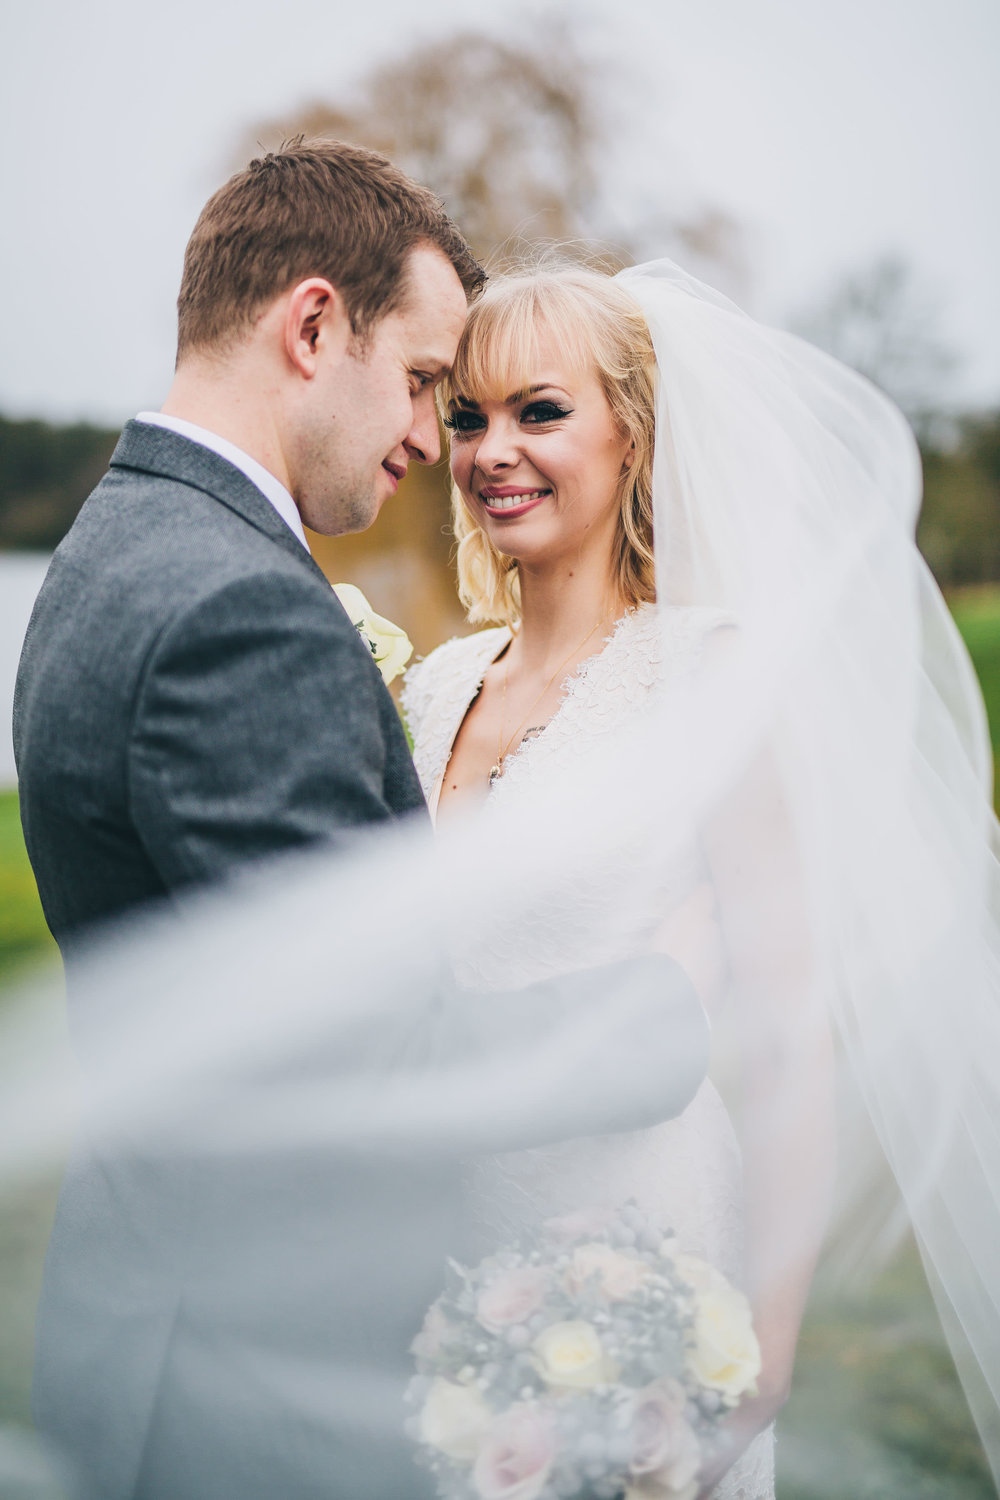 The bride and groom portraits. Combermere Abbey for a wedding.